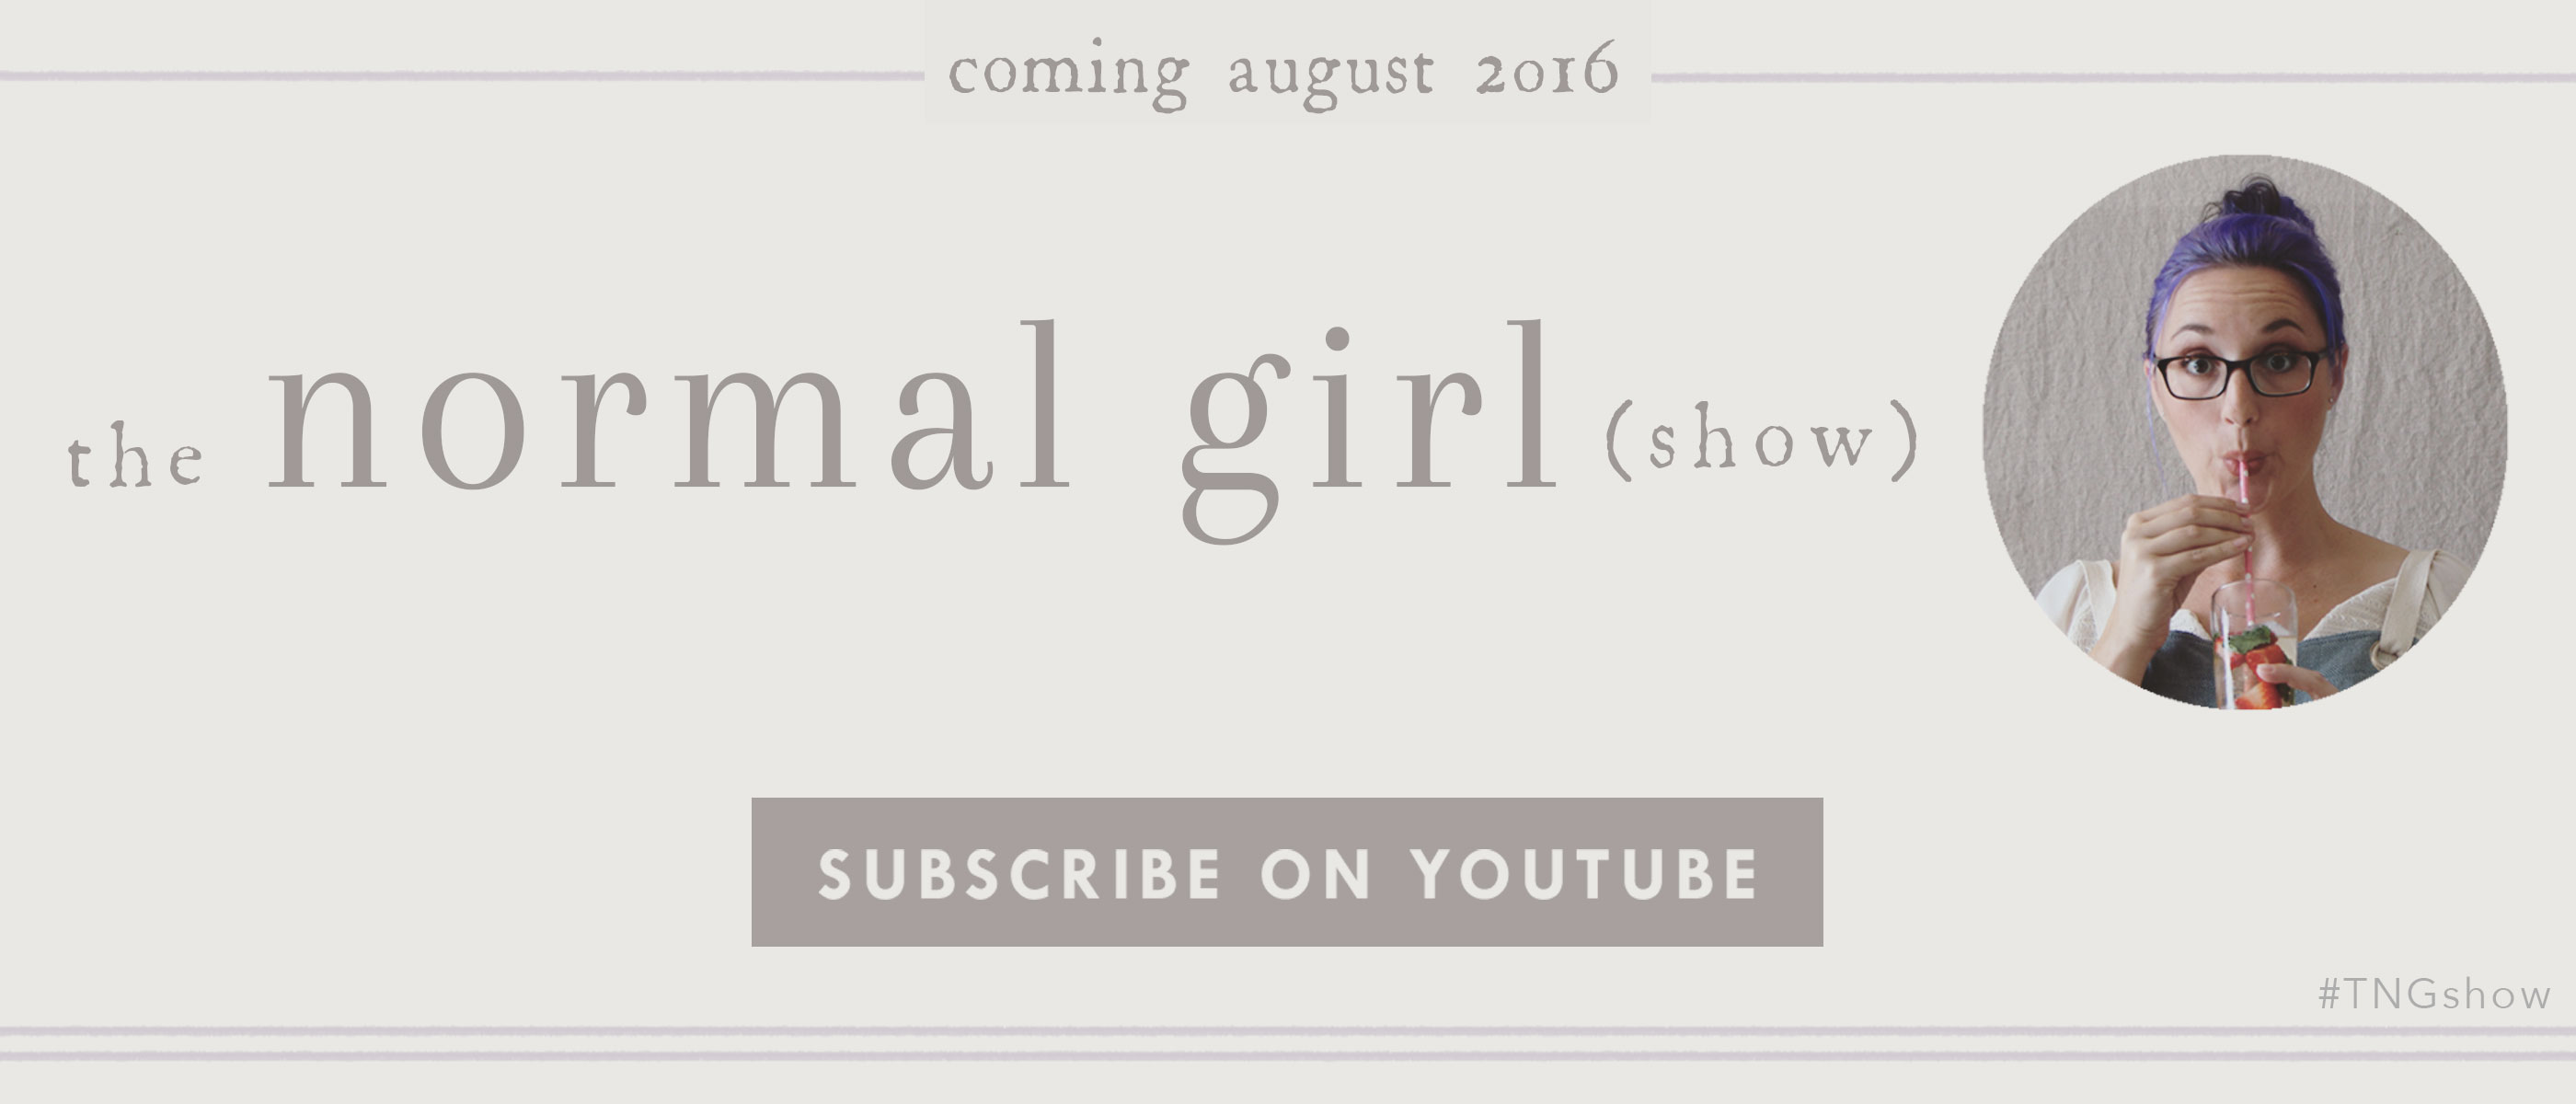 The-Normal-Girl-Show--Coming-August-2016